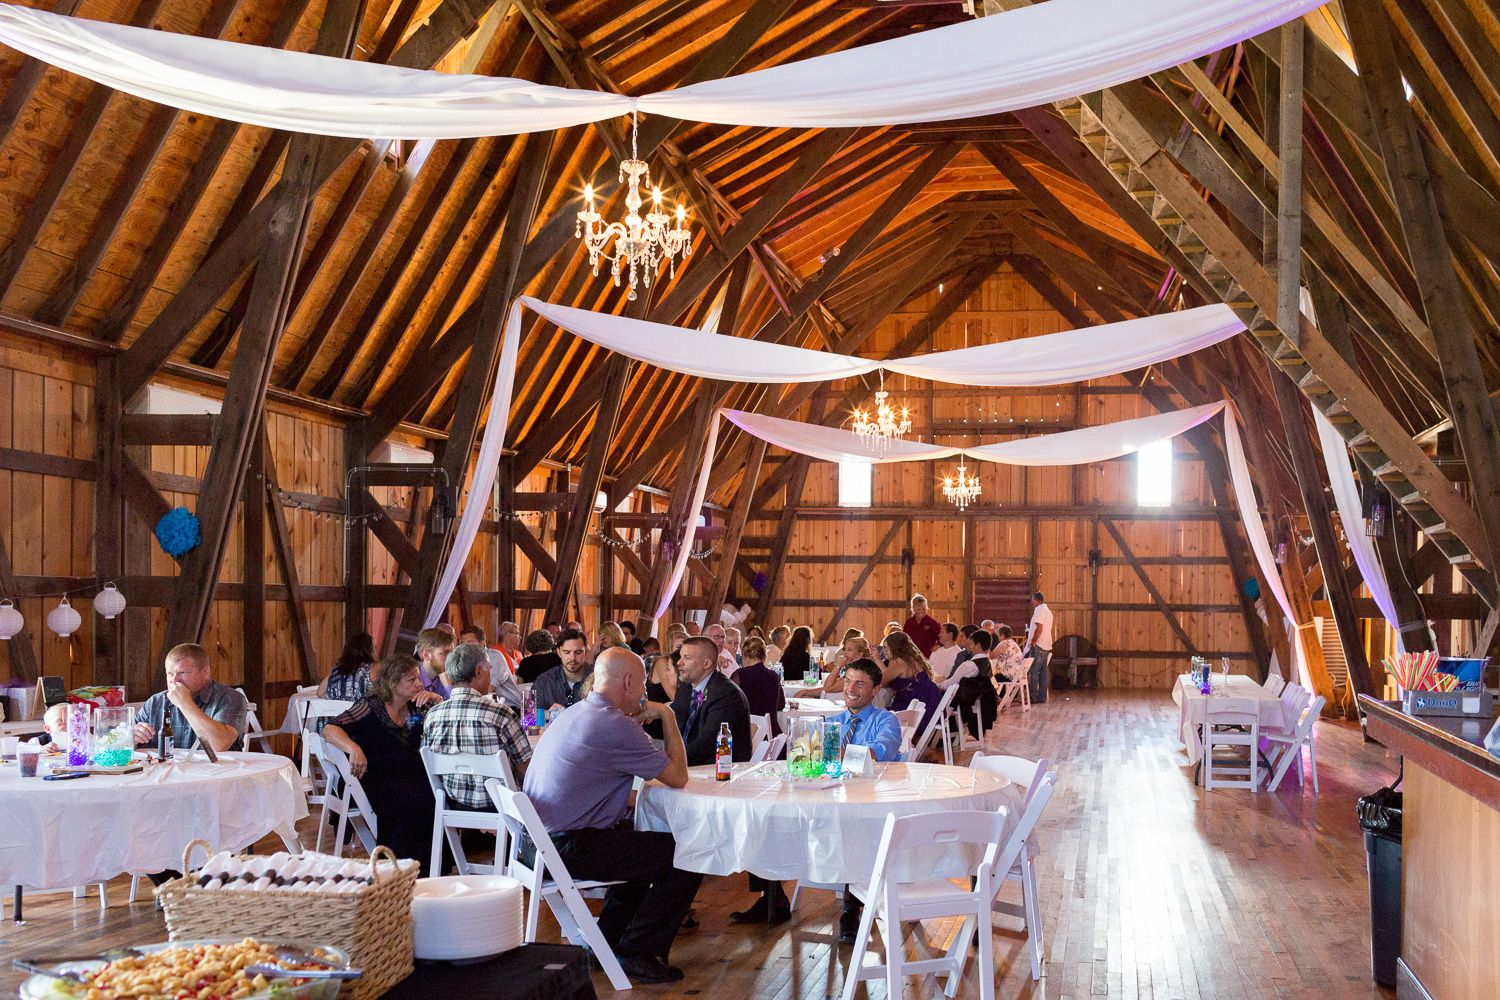 The Reception Space Provides Plenty Of Options For Decor Wedding Photography Taken At The Barns Of Old Glory St Charles Minneso St Charles Old Glory Decor